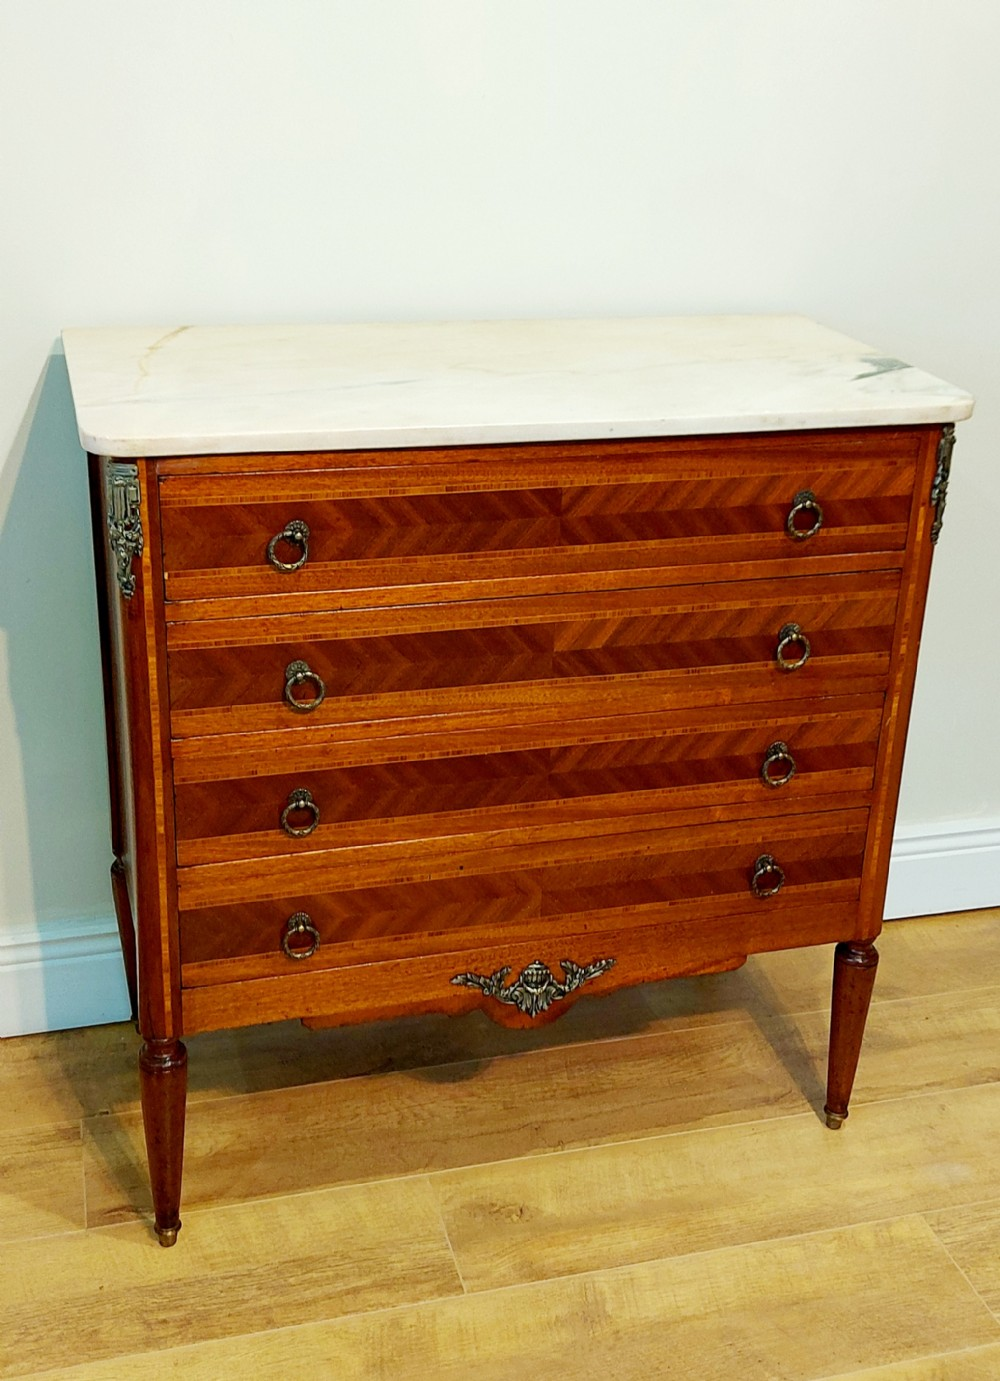 19th century french chest of drawers with marble top